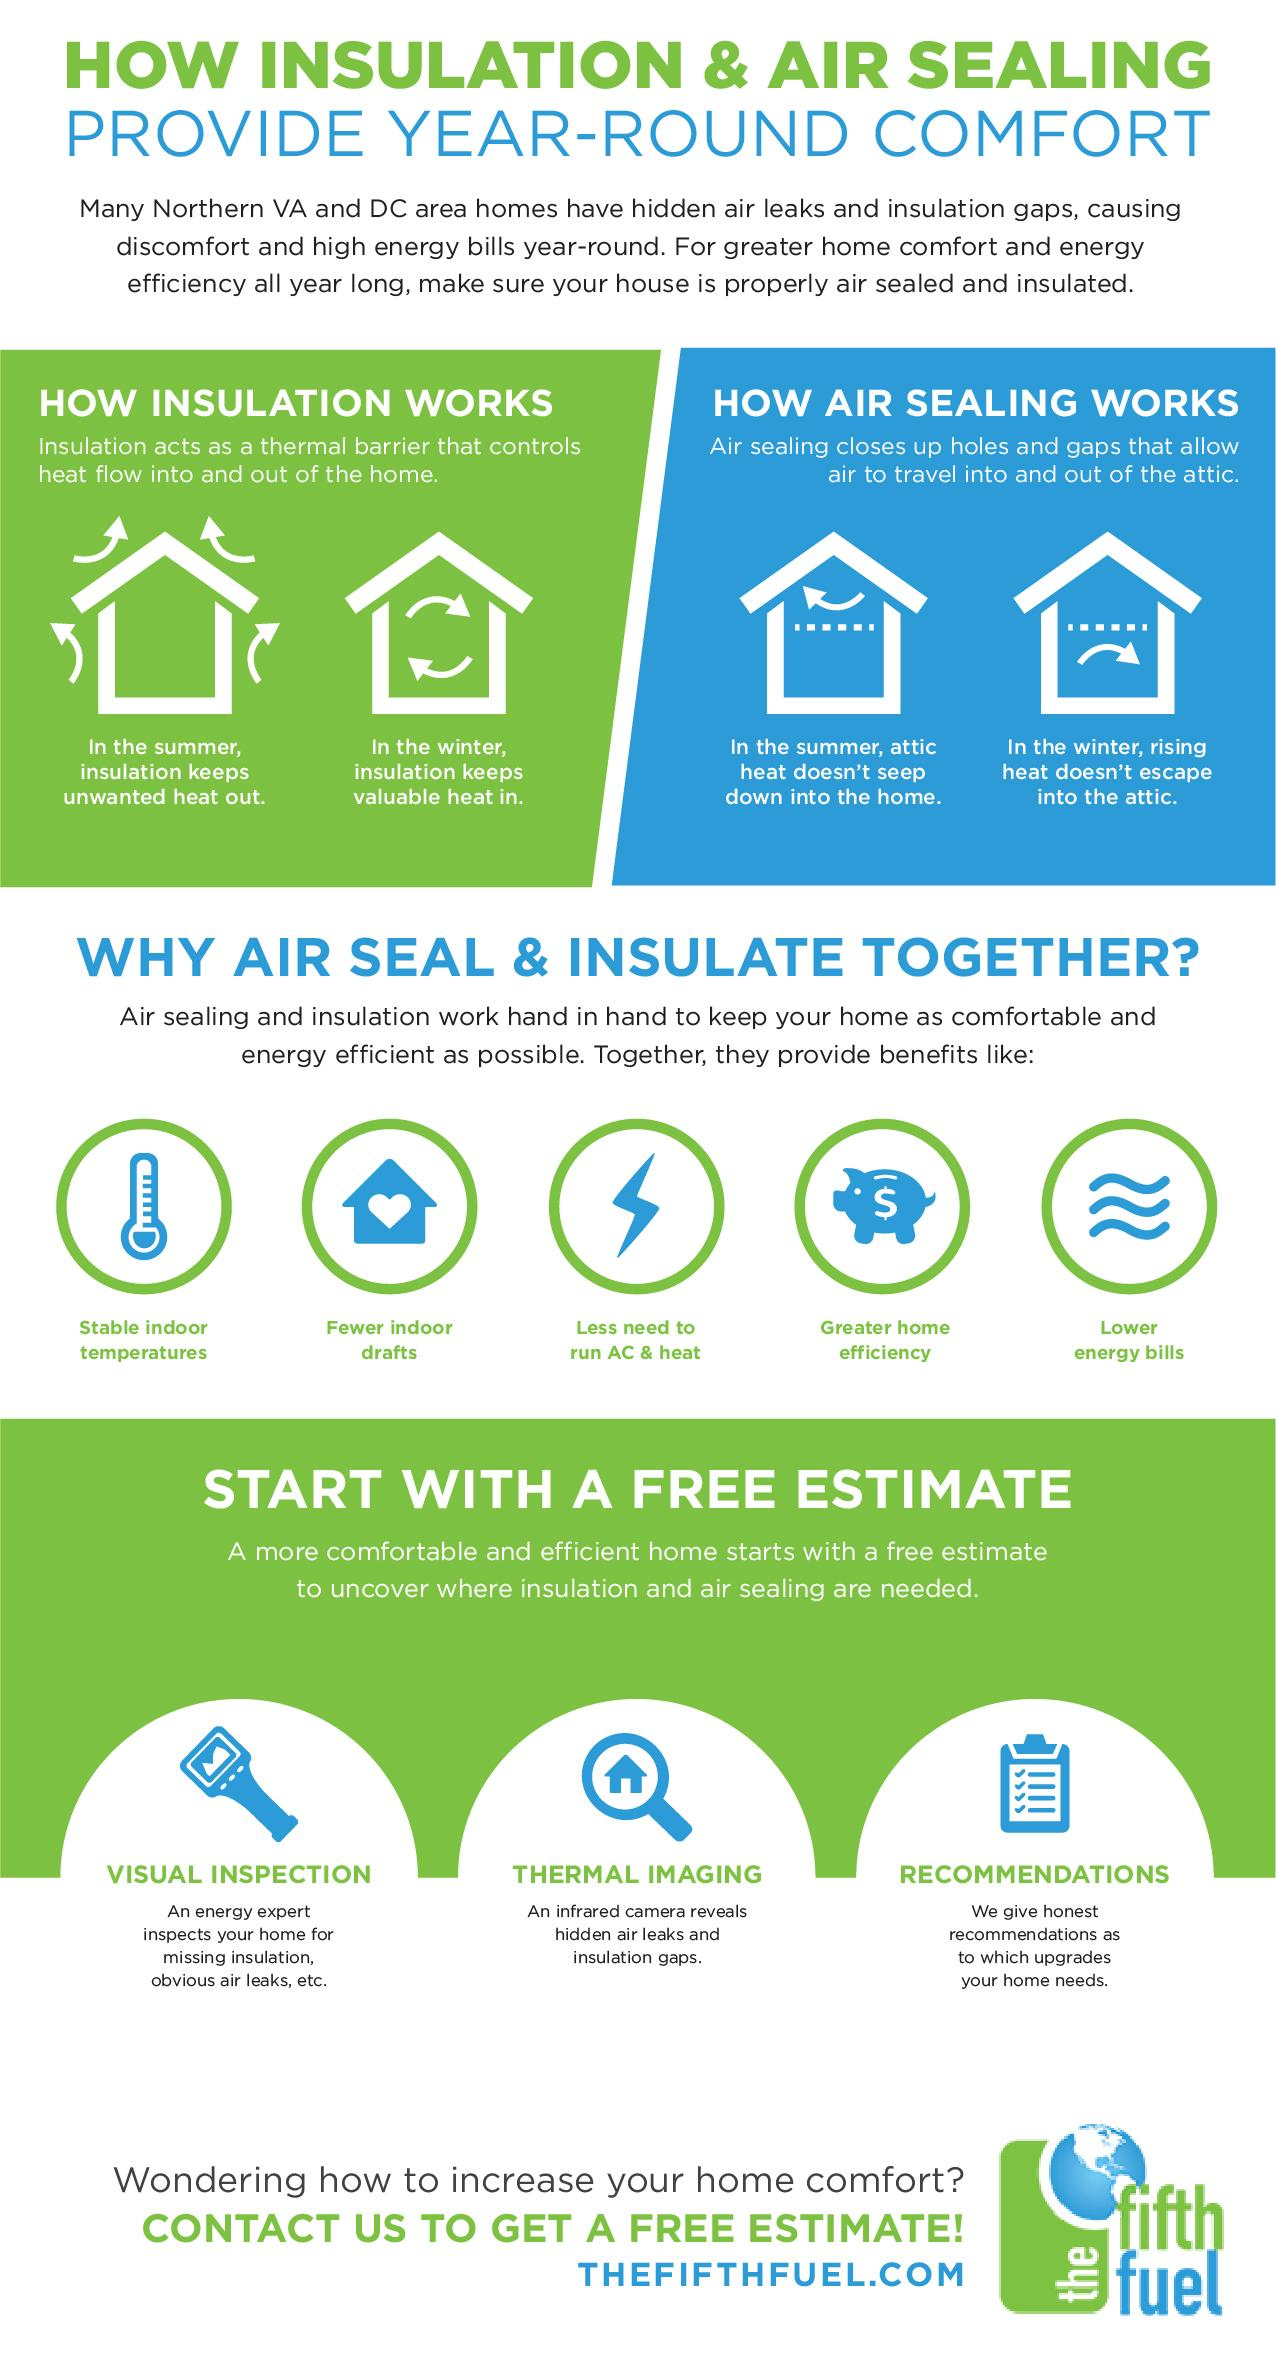 insulation and air sealing duo infographic the fifth fuel